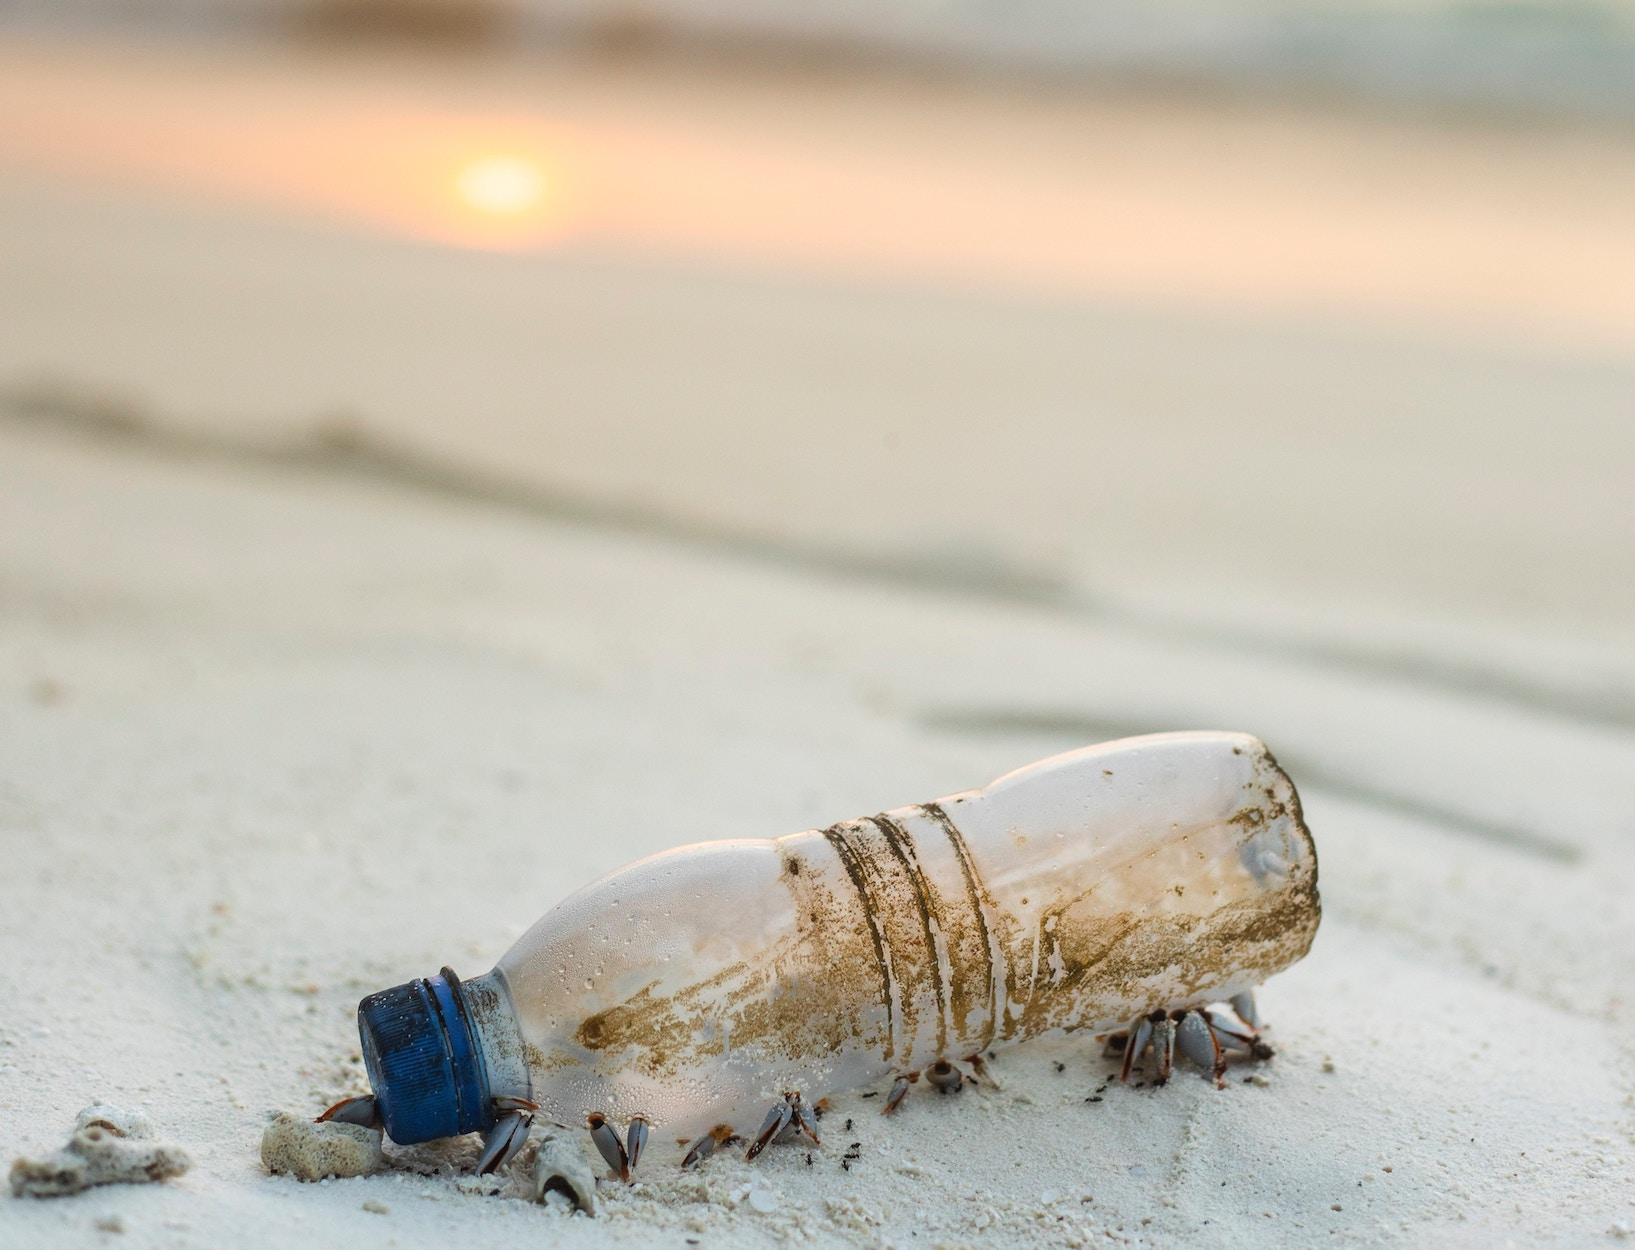 Microplastics Find Their Way into Your Gut, a Pilot Study Finds